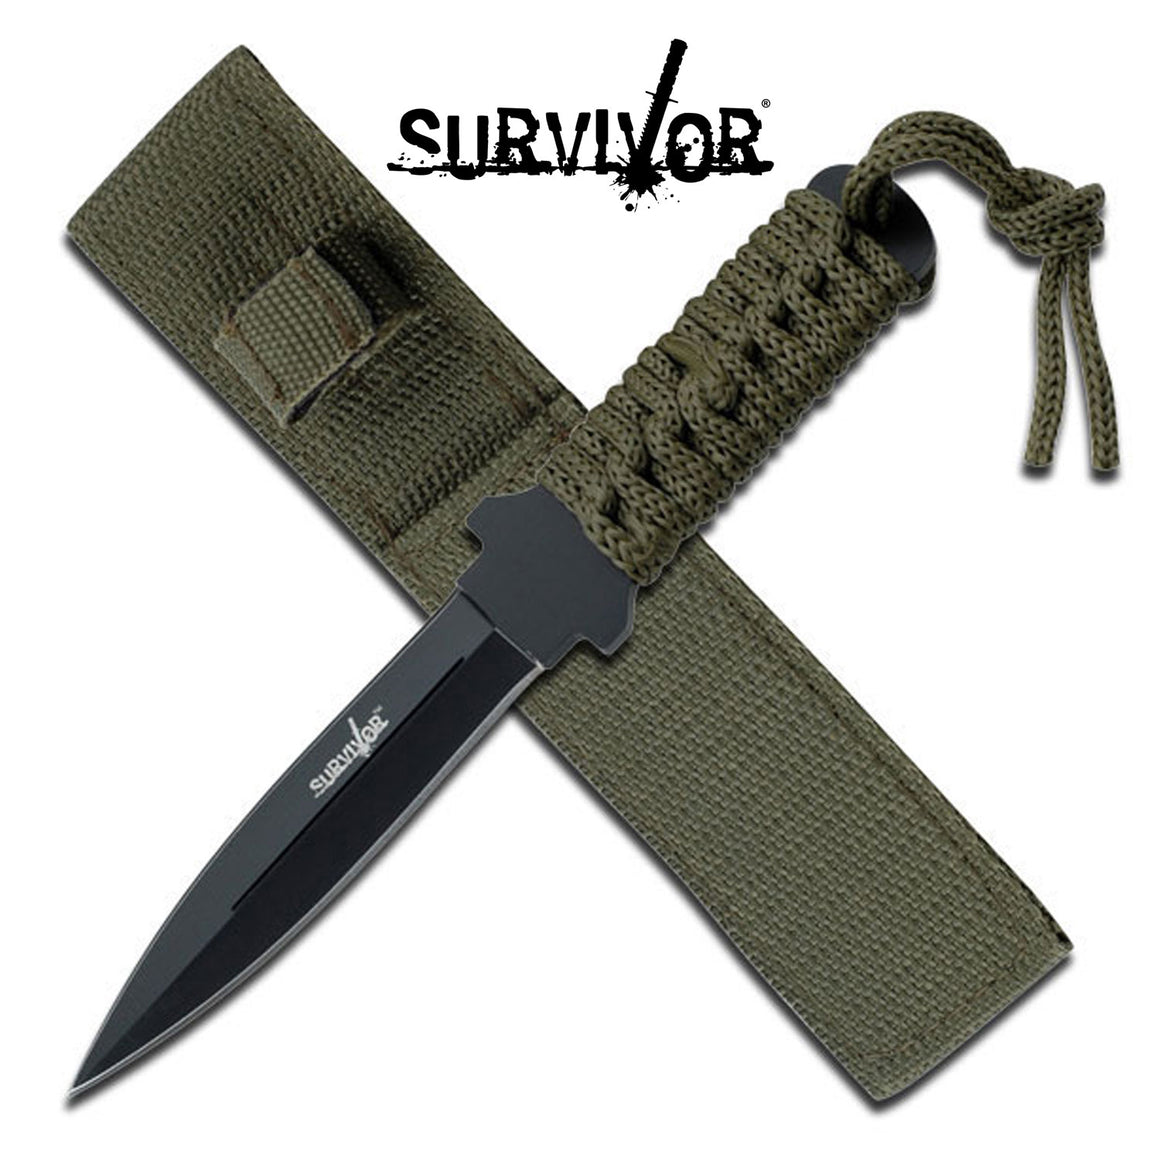 Survivor HK-7521 Fixed Blade Knife